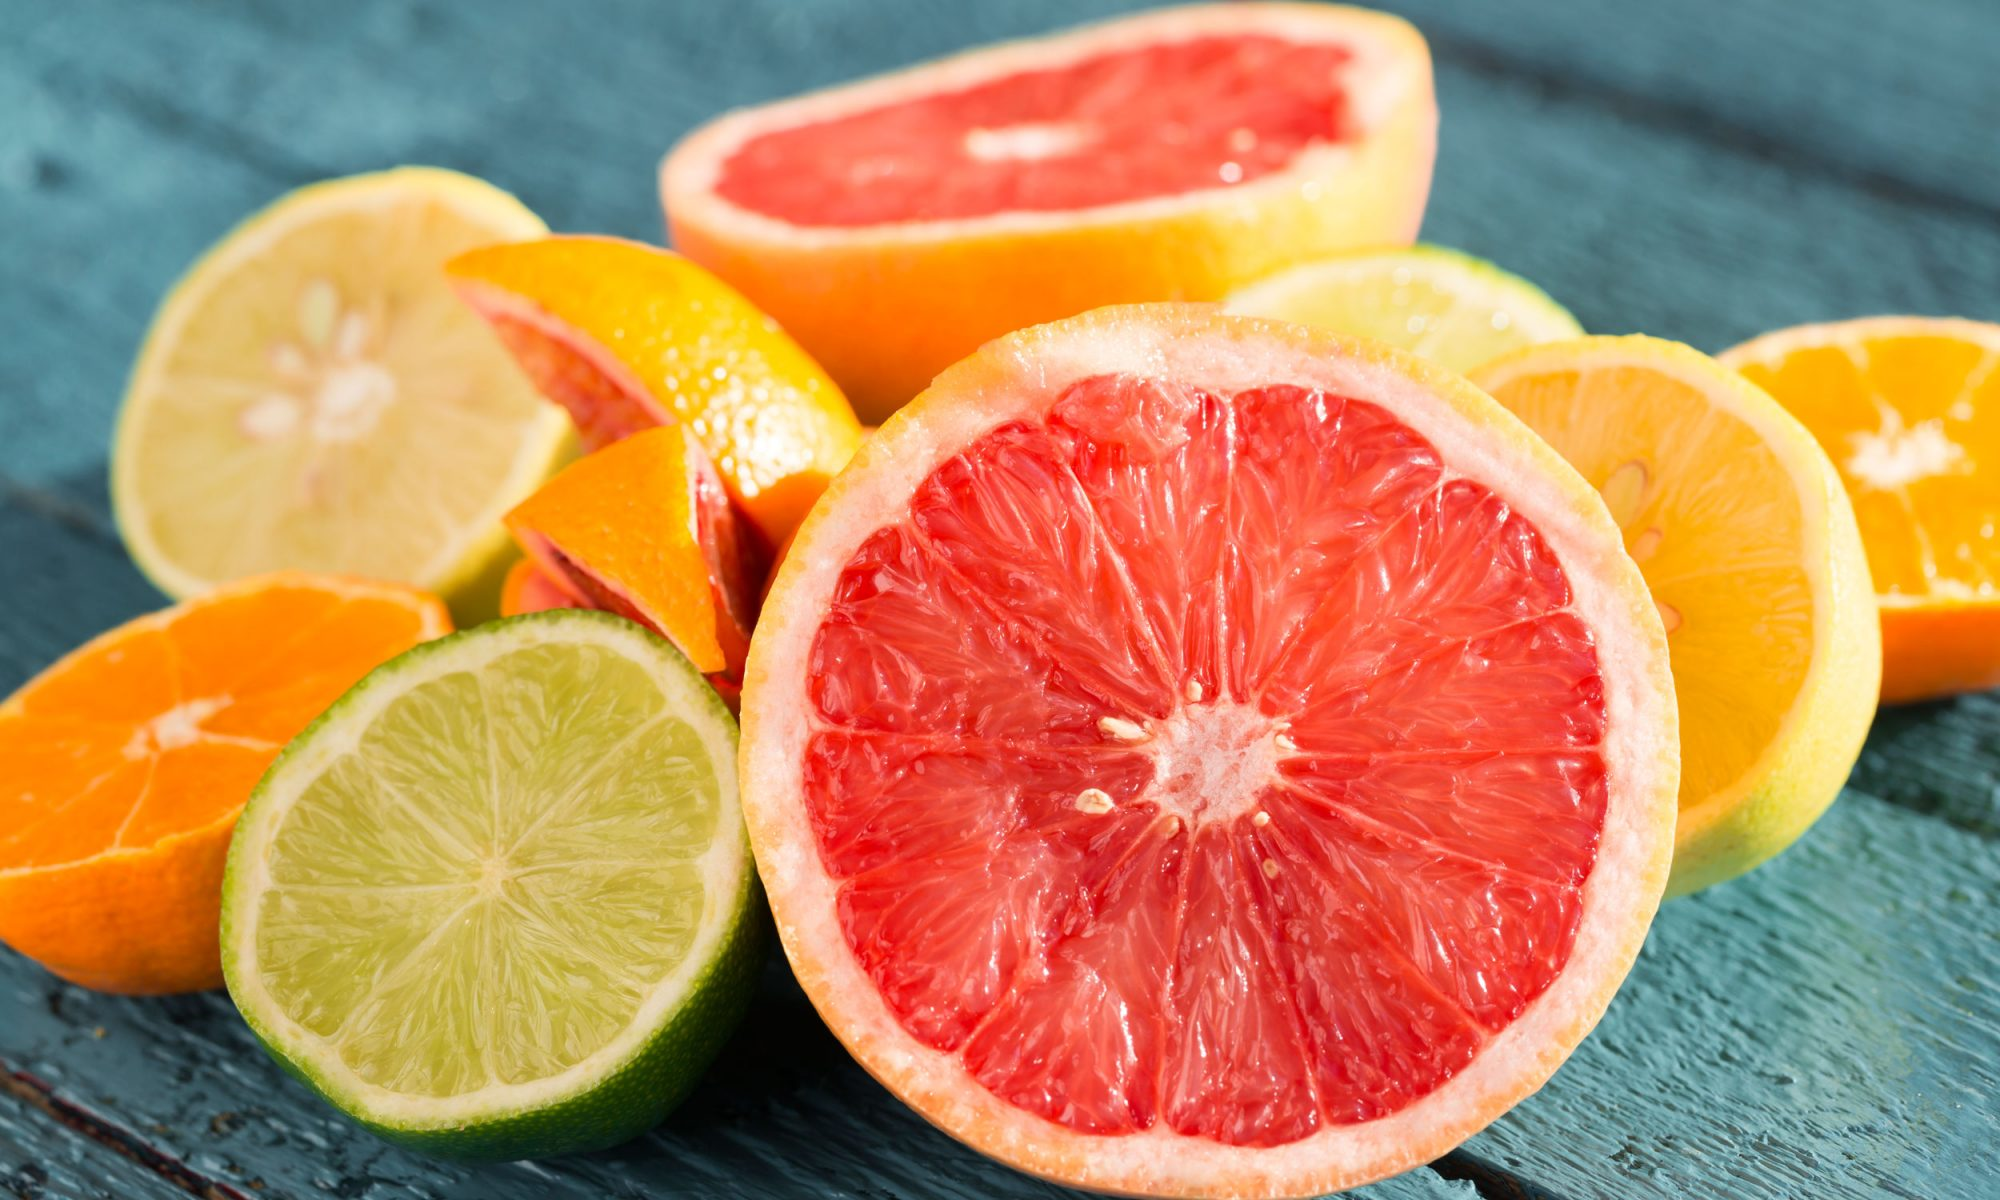 Wake Up Your Skin with Citrus-Based Beauty DIYs